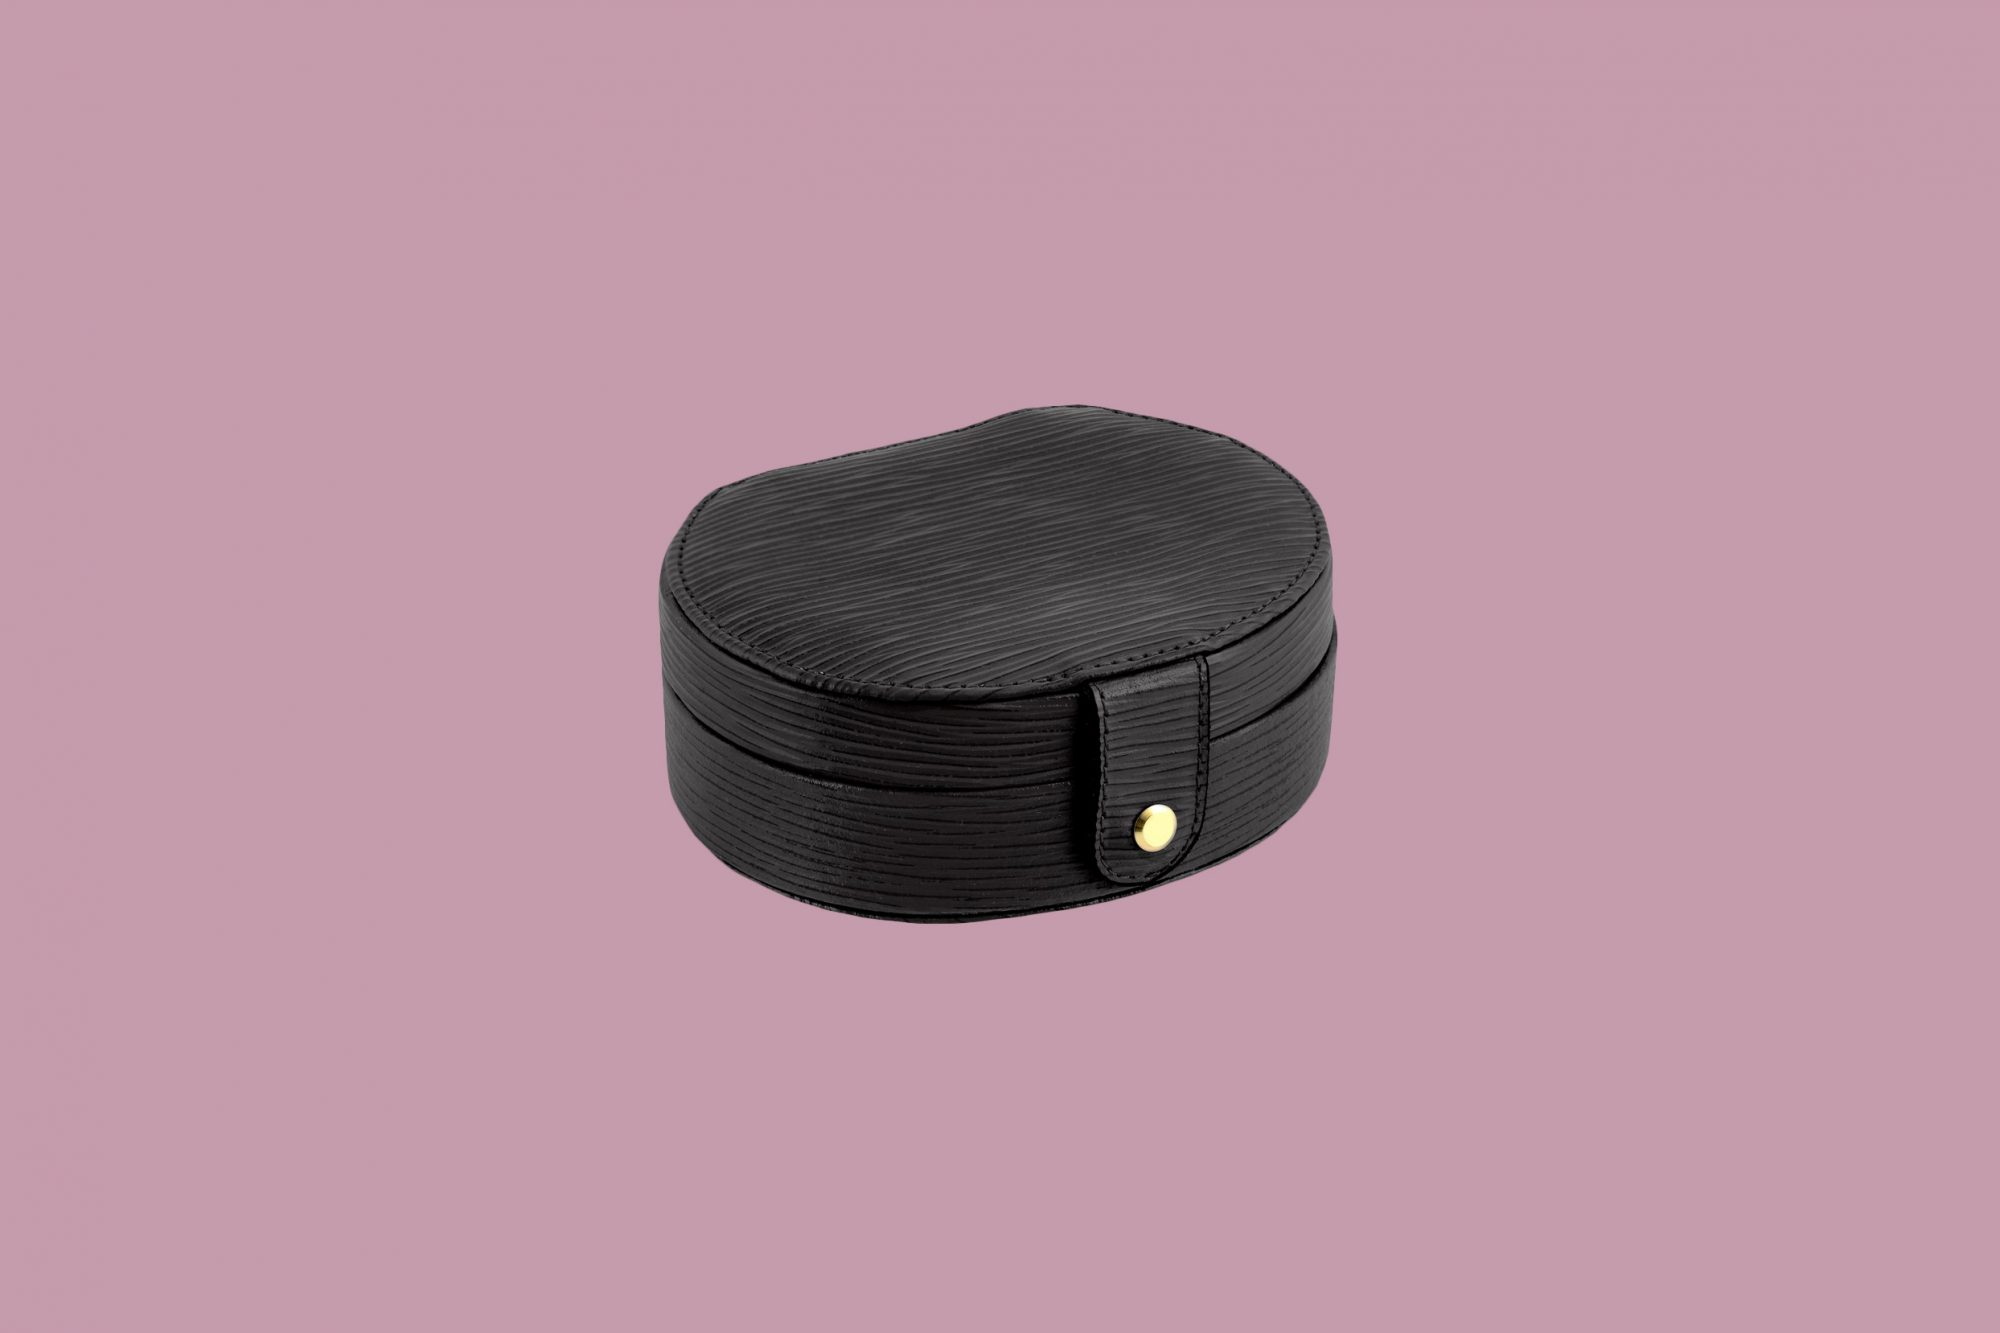 Scully & Scully Wave Leather Oval Jewelry Box